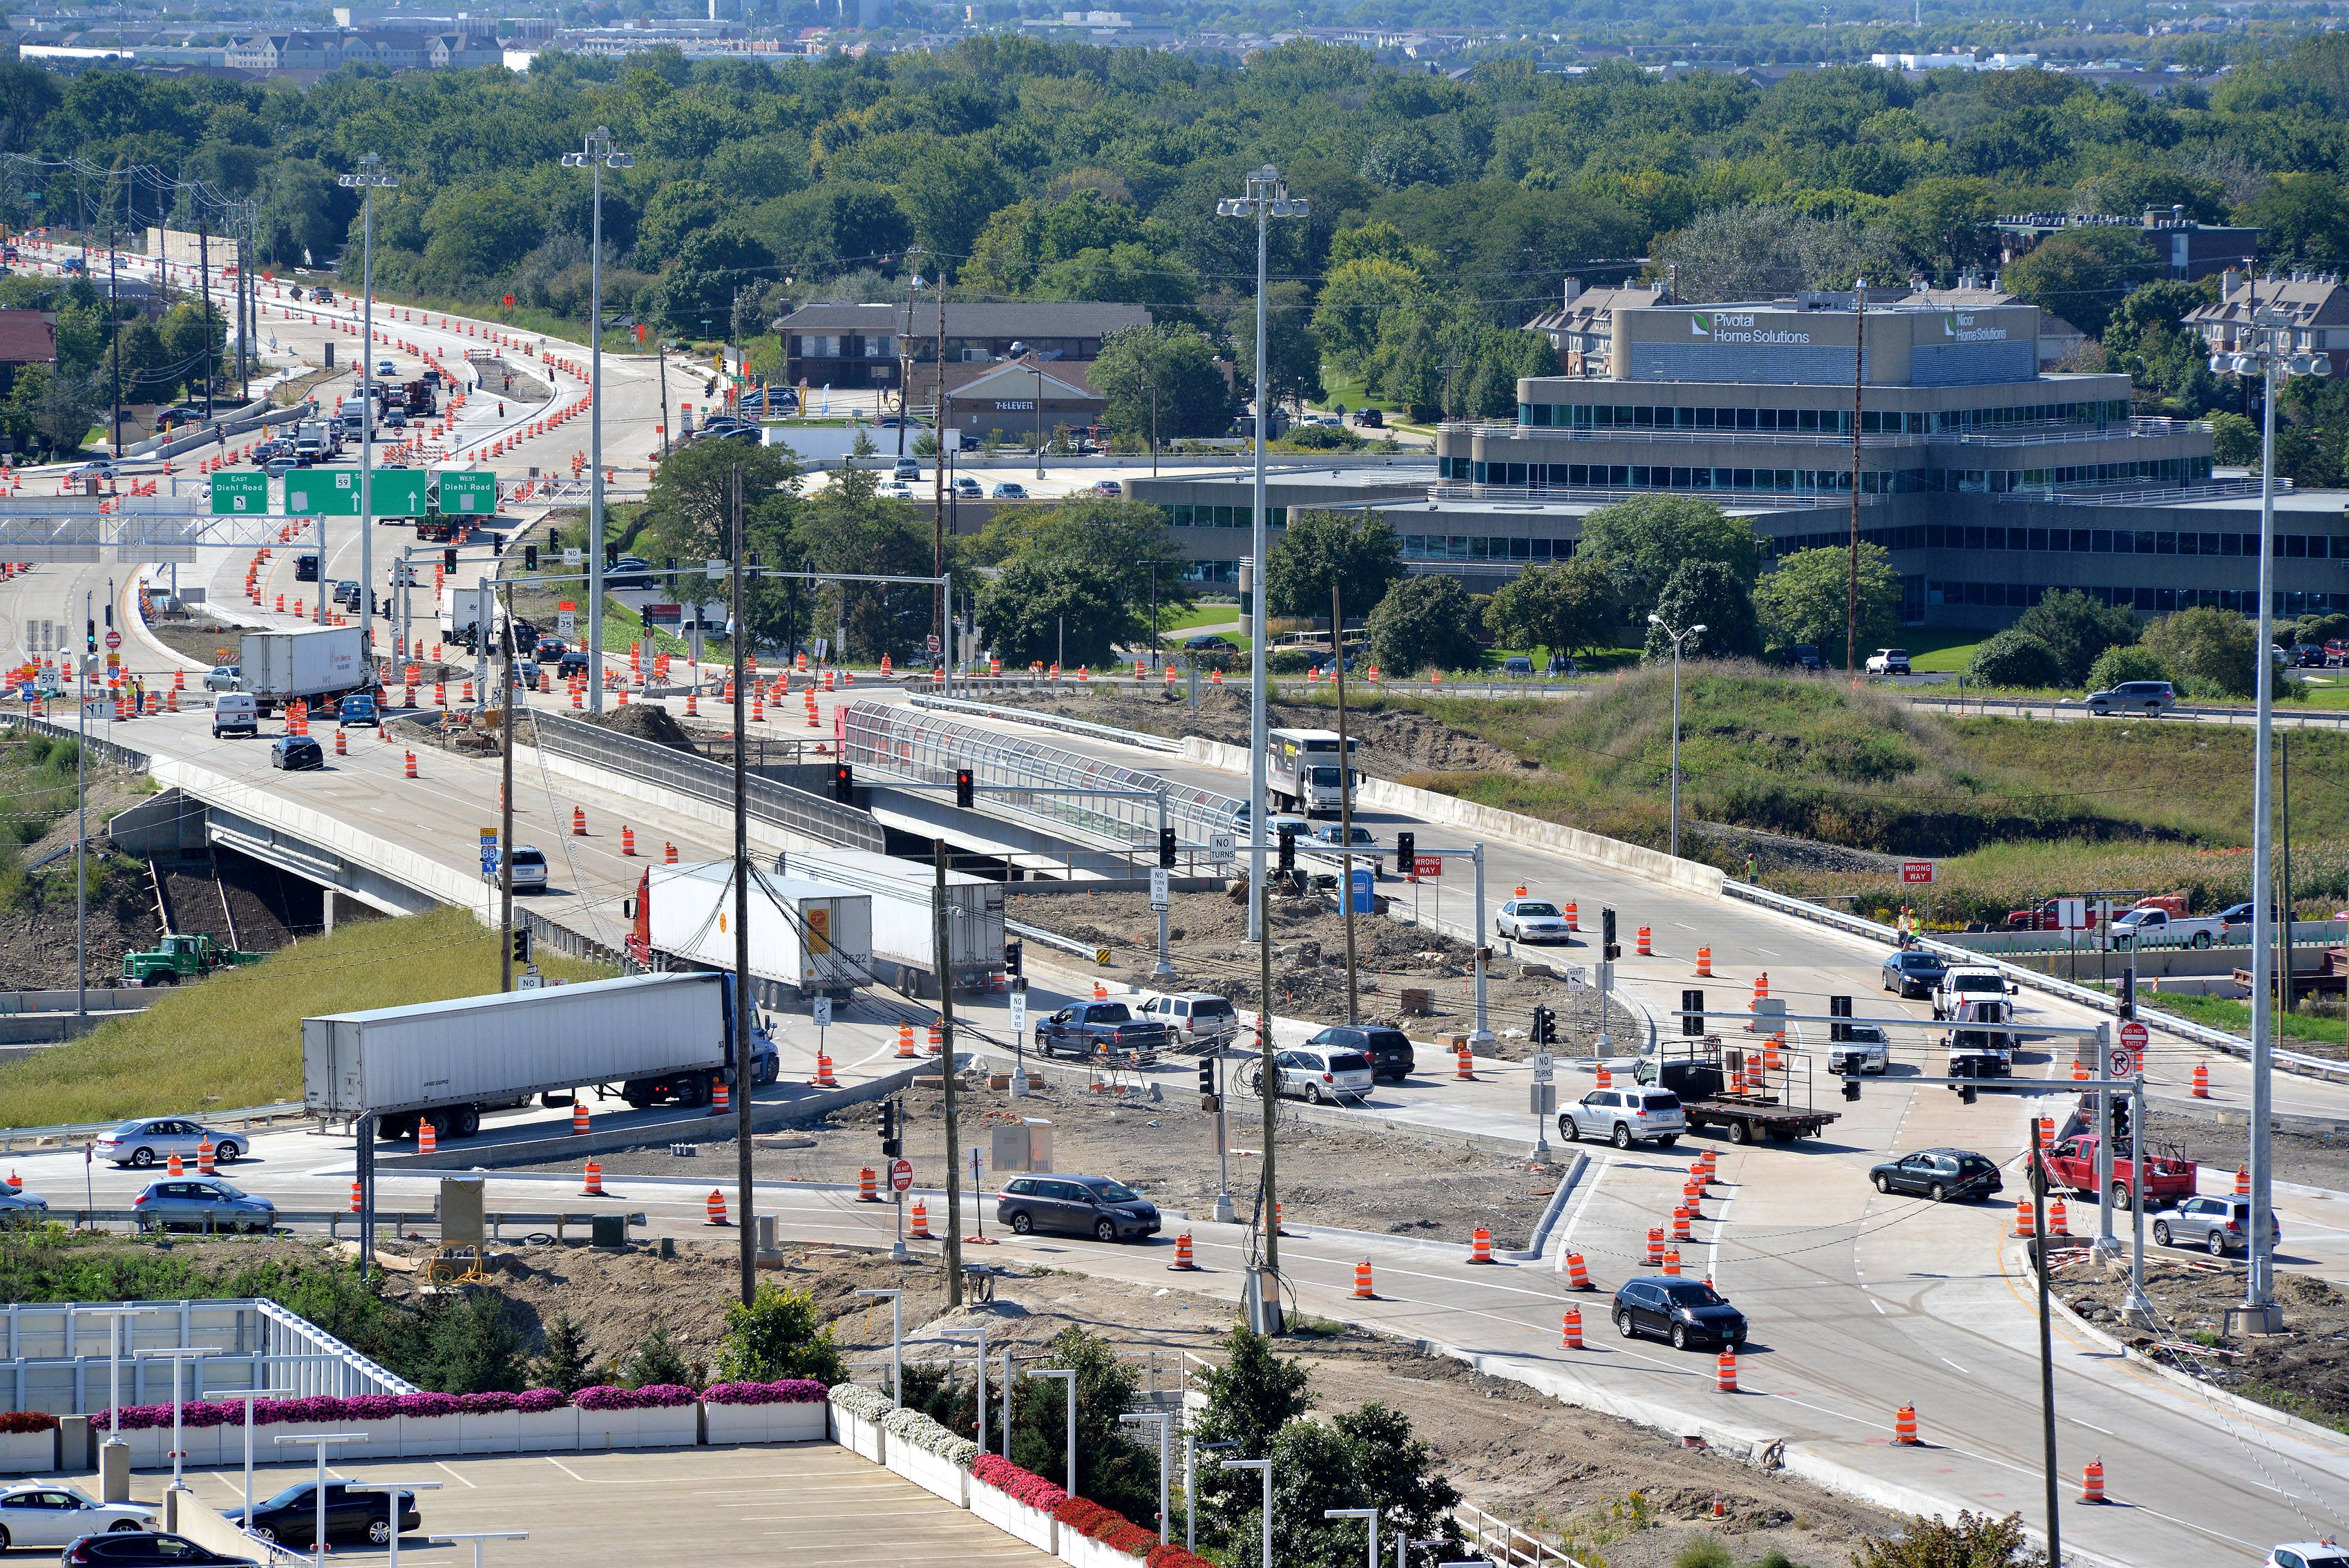 A diverging diamond interchange opened in 2015 at Route 59 and I-88 in Naperville.